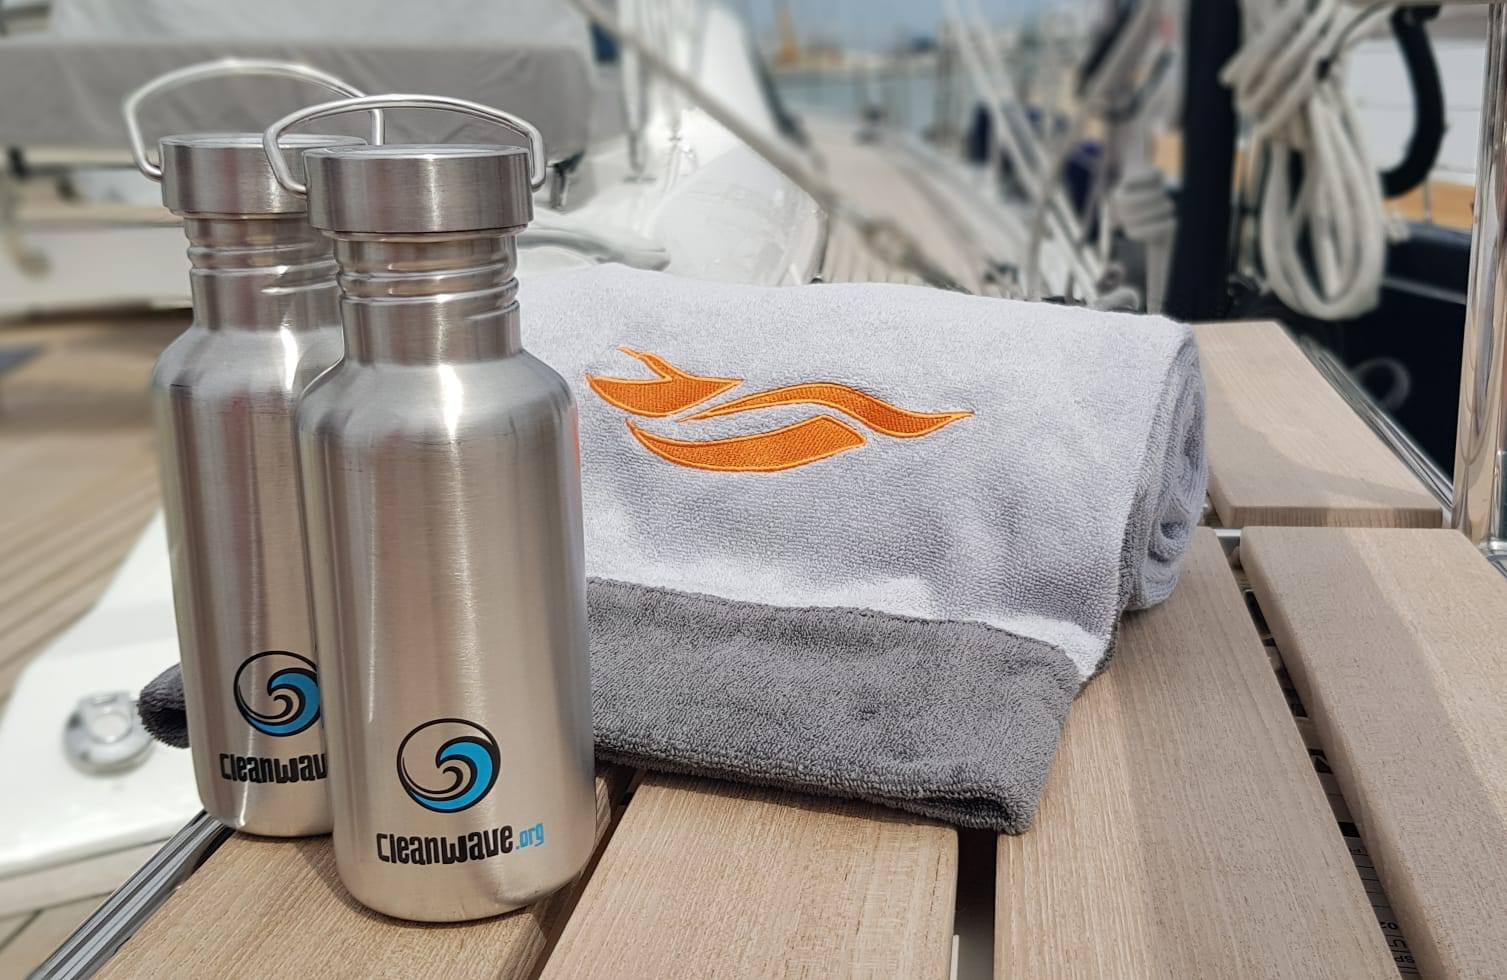 Firebird is going eco in attempt to reduce plastic waste.